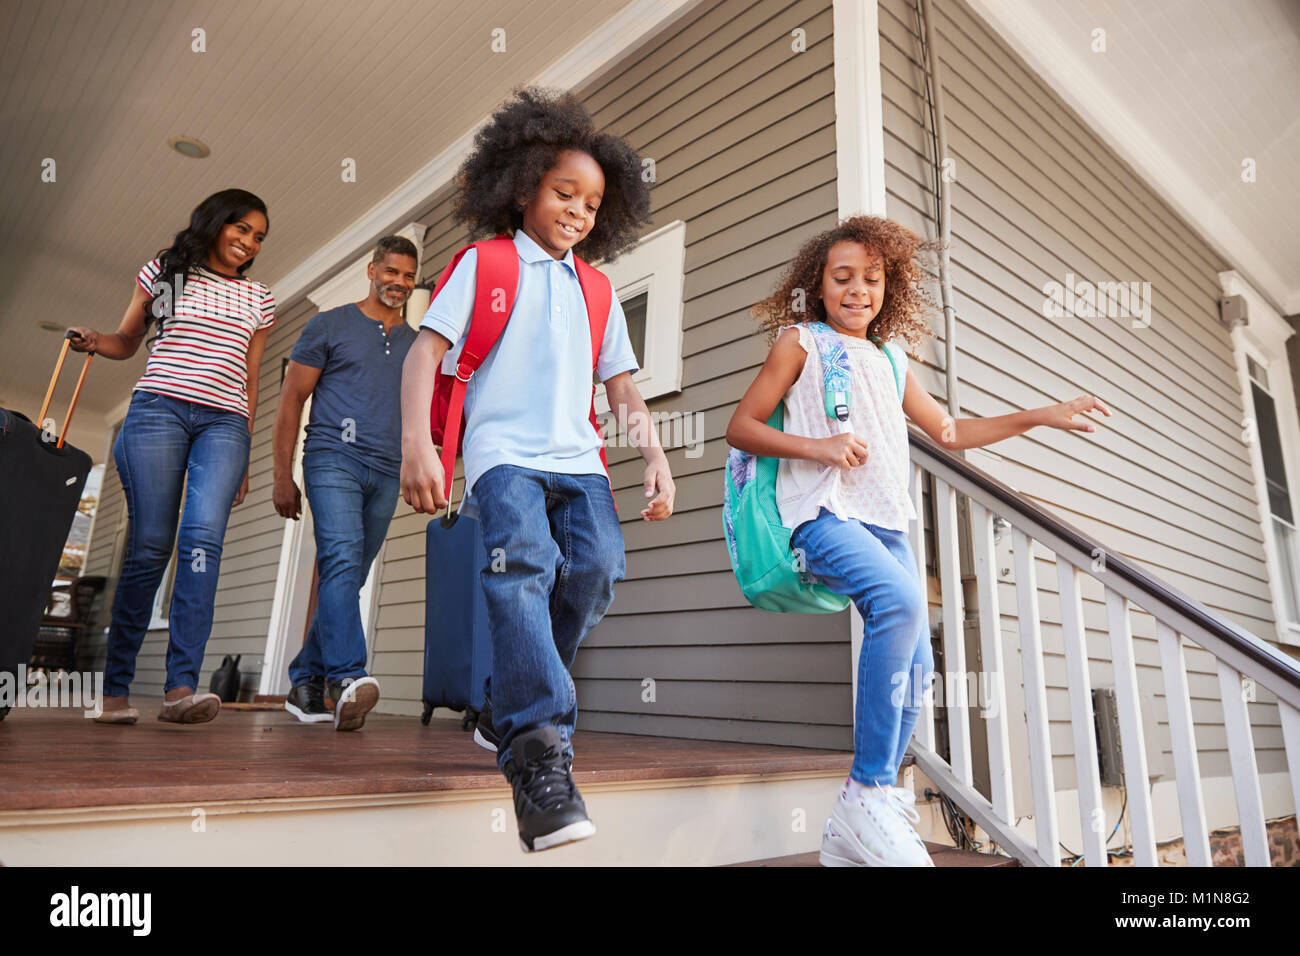 Family With Luggage Leaving House For Vacation - Stock Image